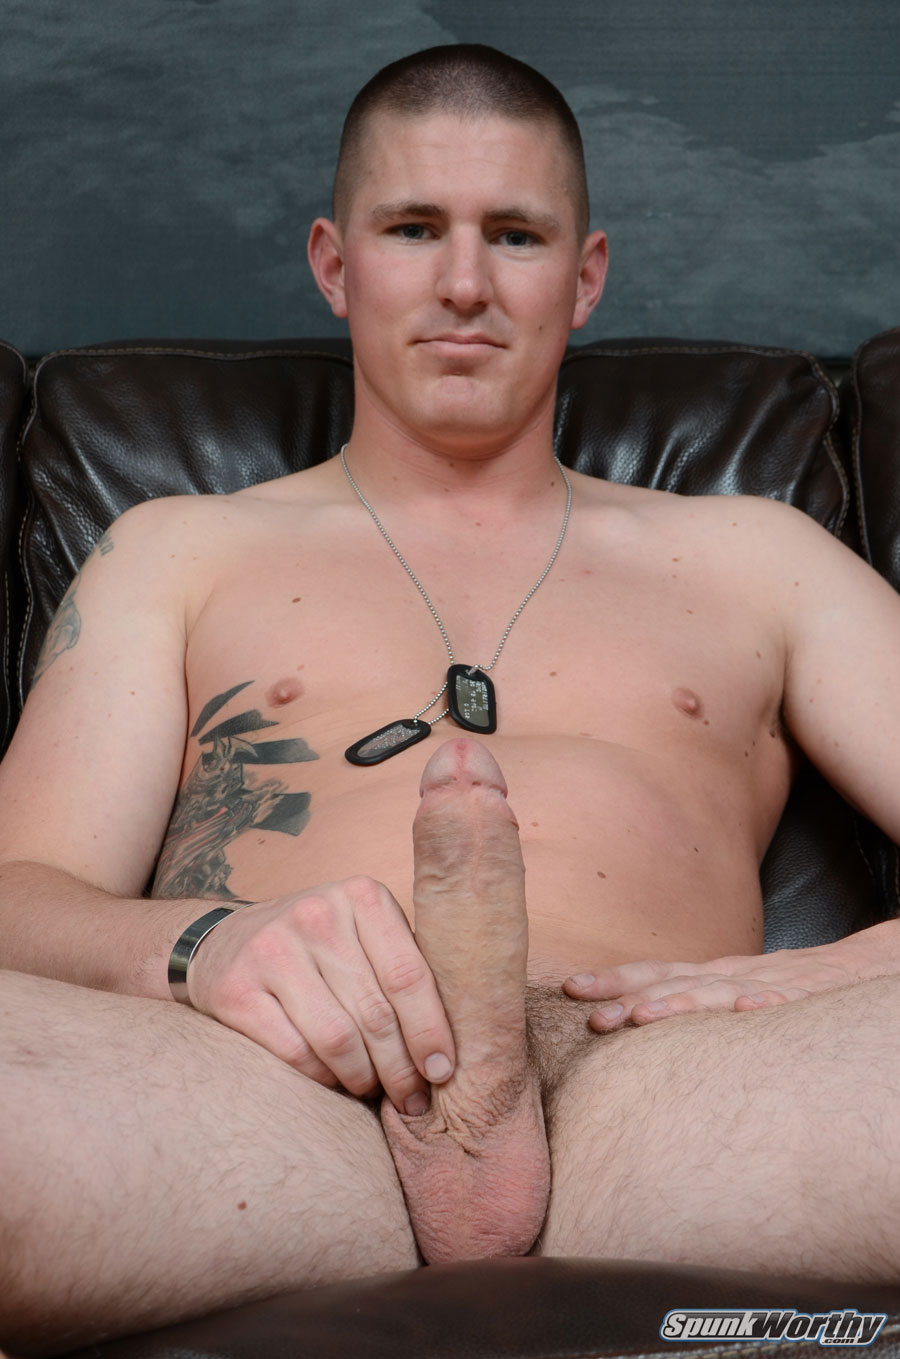 SpunkWorthy-Eli-Straight-Marine-With-Big-Uncut-Cock-Masturbating-Jerking-Off-06 Real Straight Marine With Huge Uncut Cock Shoots His Cum Load